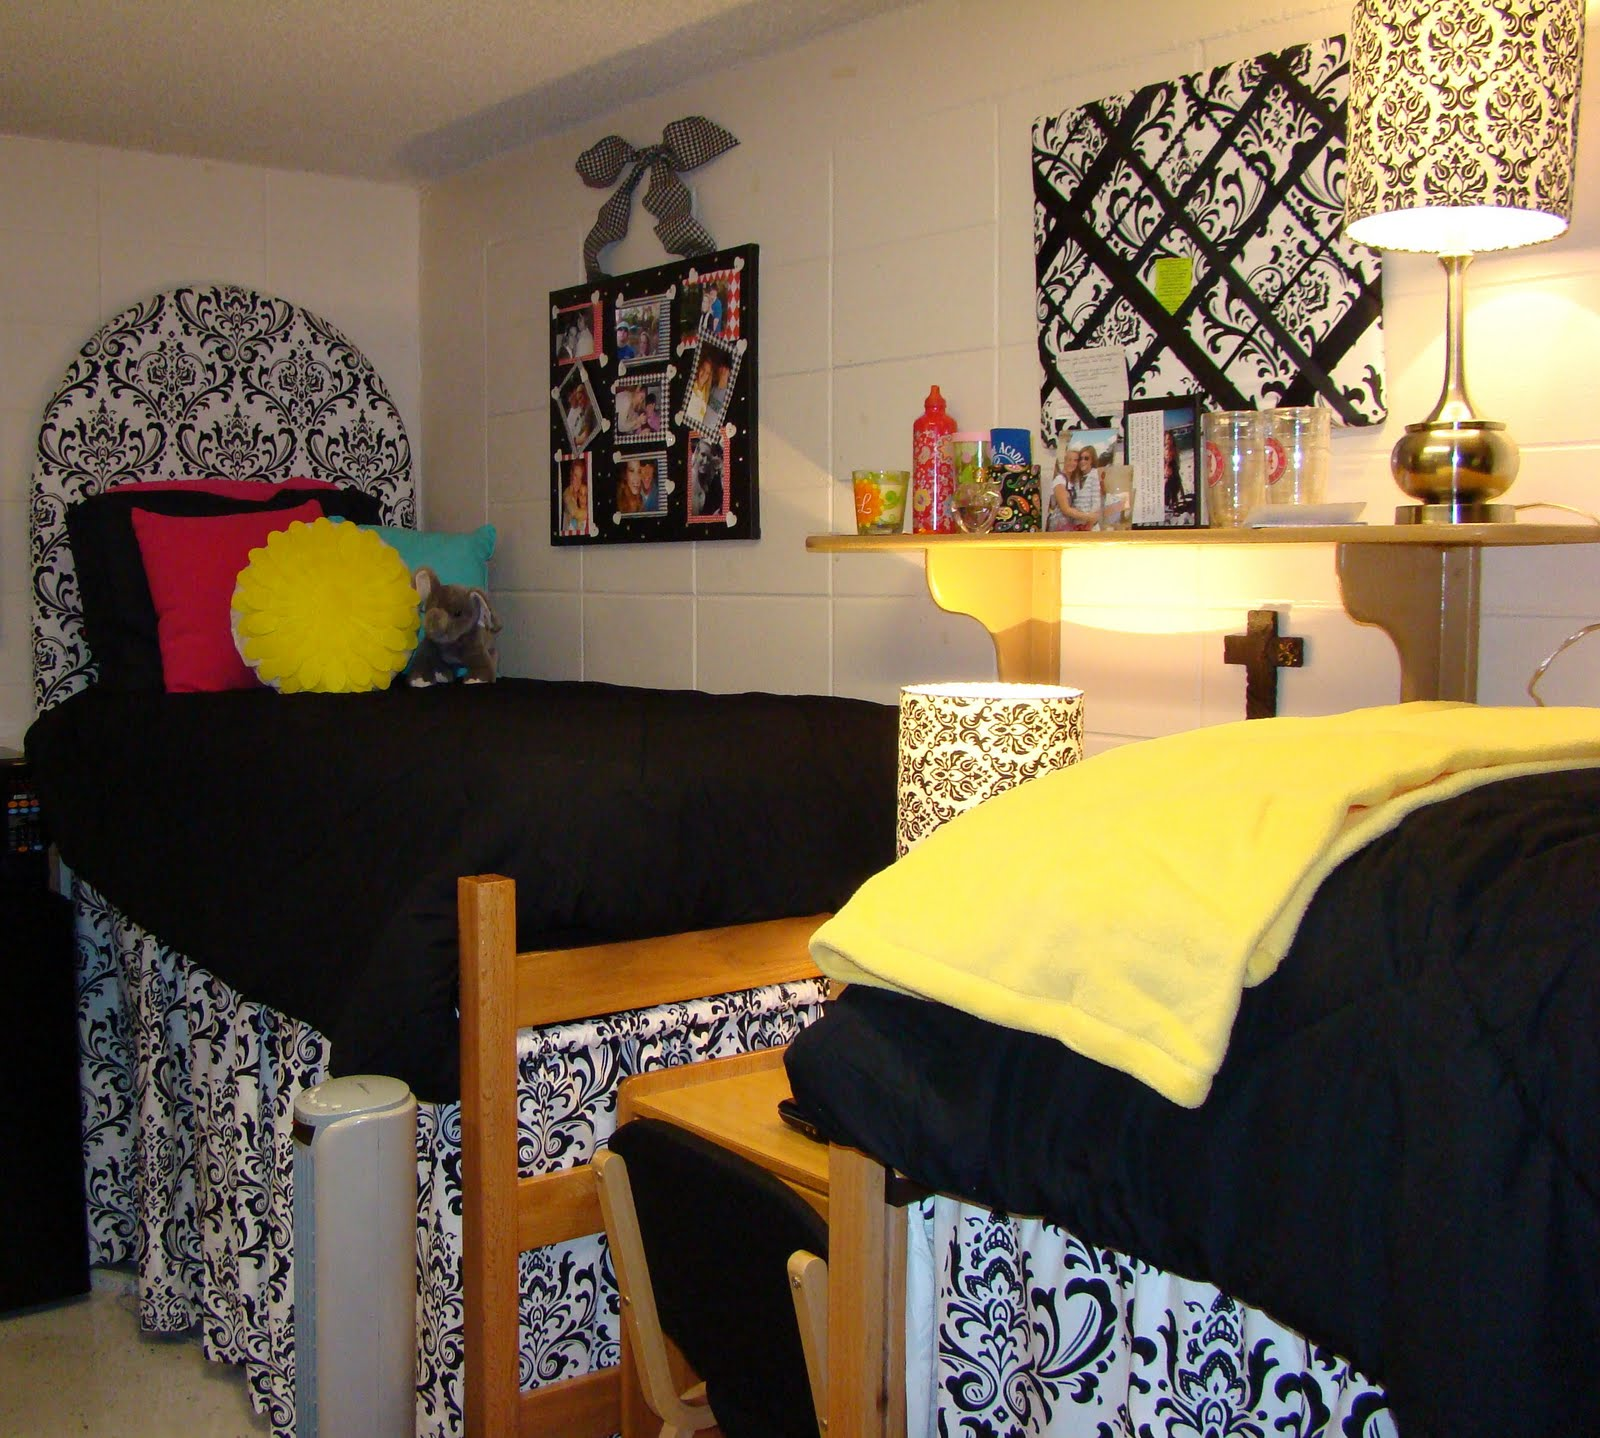 Doodlebug designs mg dorm room upholstered headboard for Cute dorm bathroom ideas